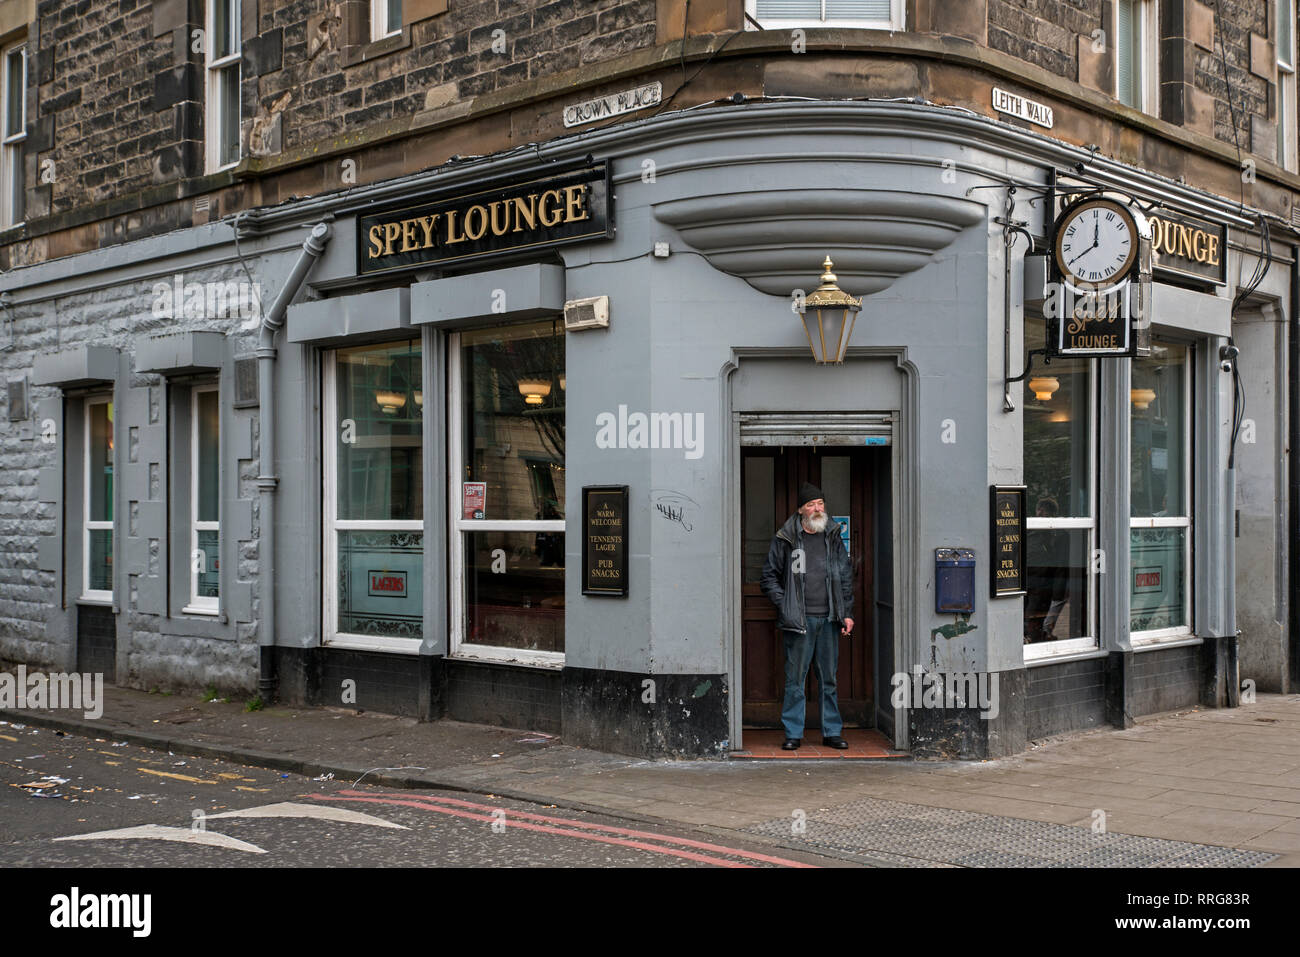 A customer stands in the doorway of the Spey Lounge public house on Leith Walk in Edinburgh, Scotland, UK. - Stock Image